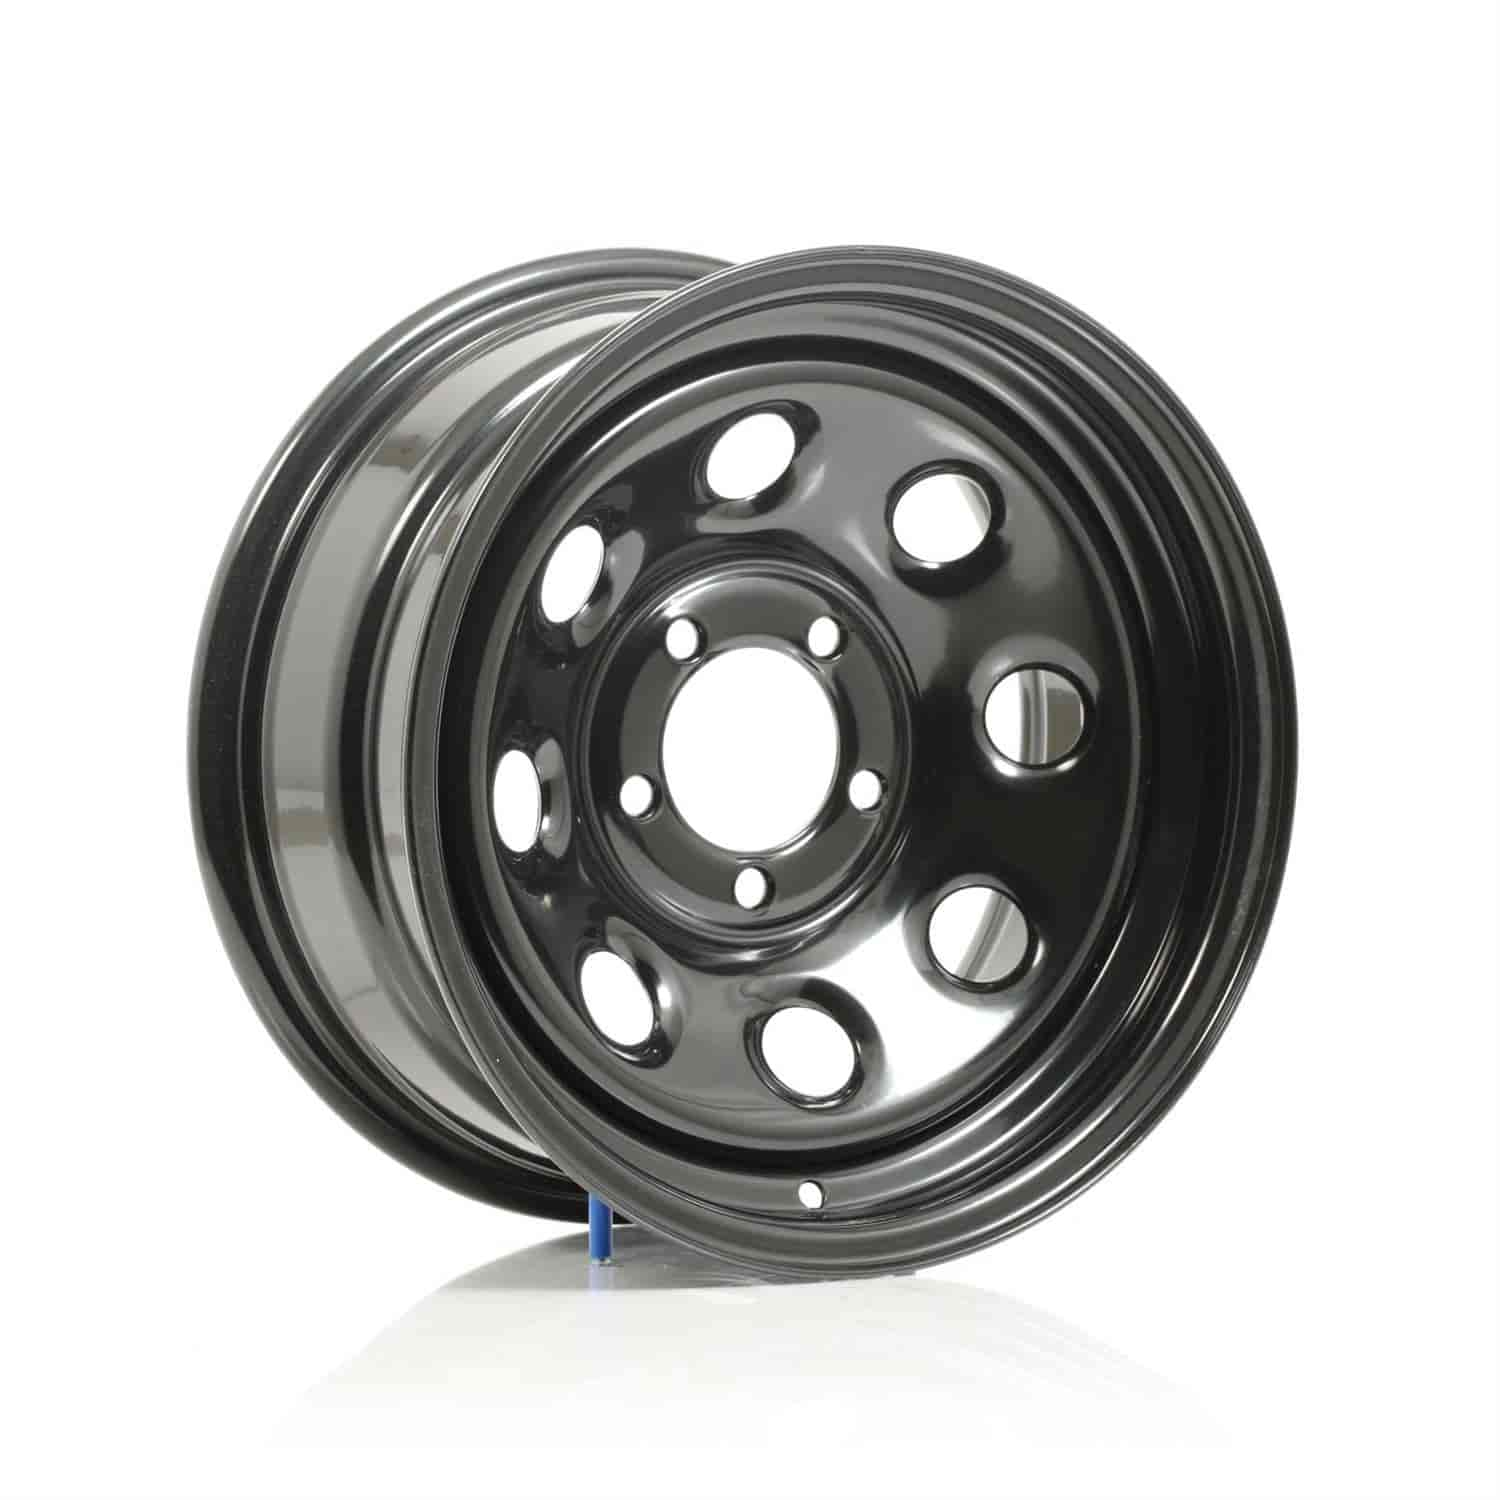 Cragar 3978864P - Cragar Black Soft 8 Wheels